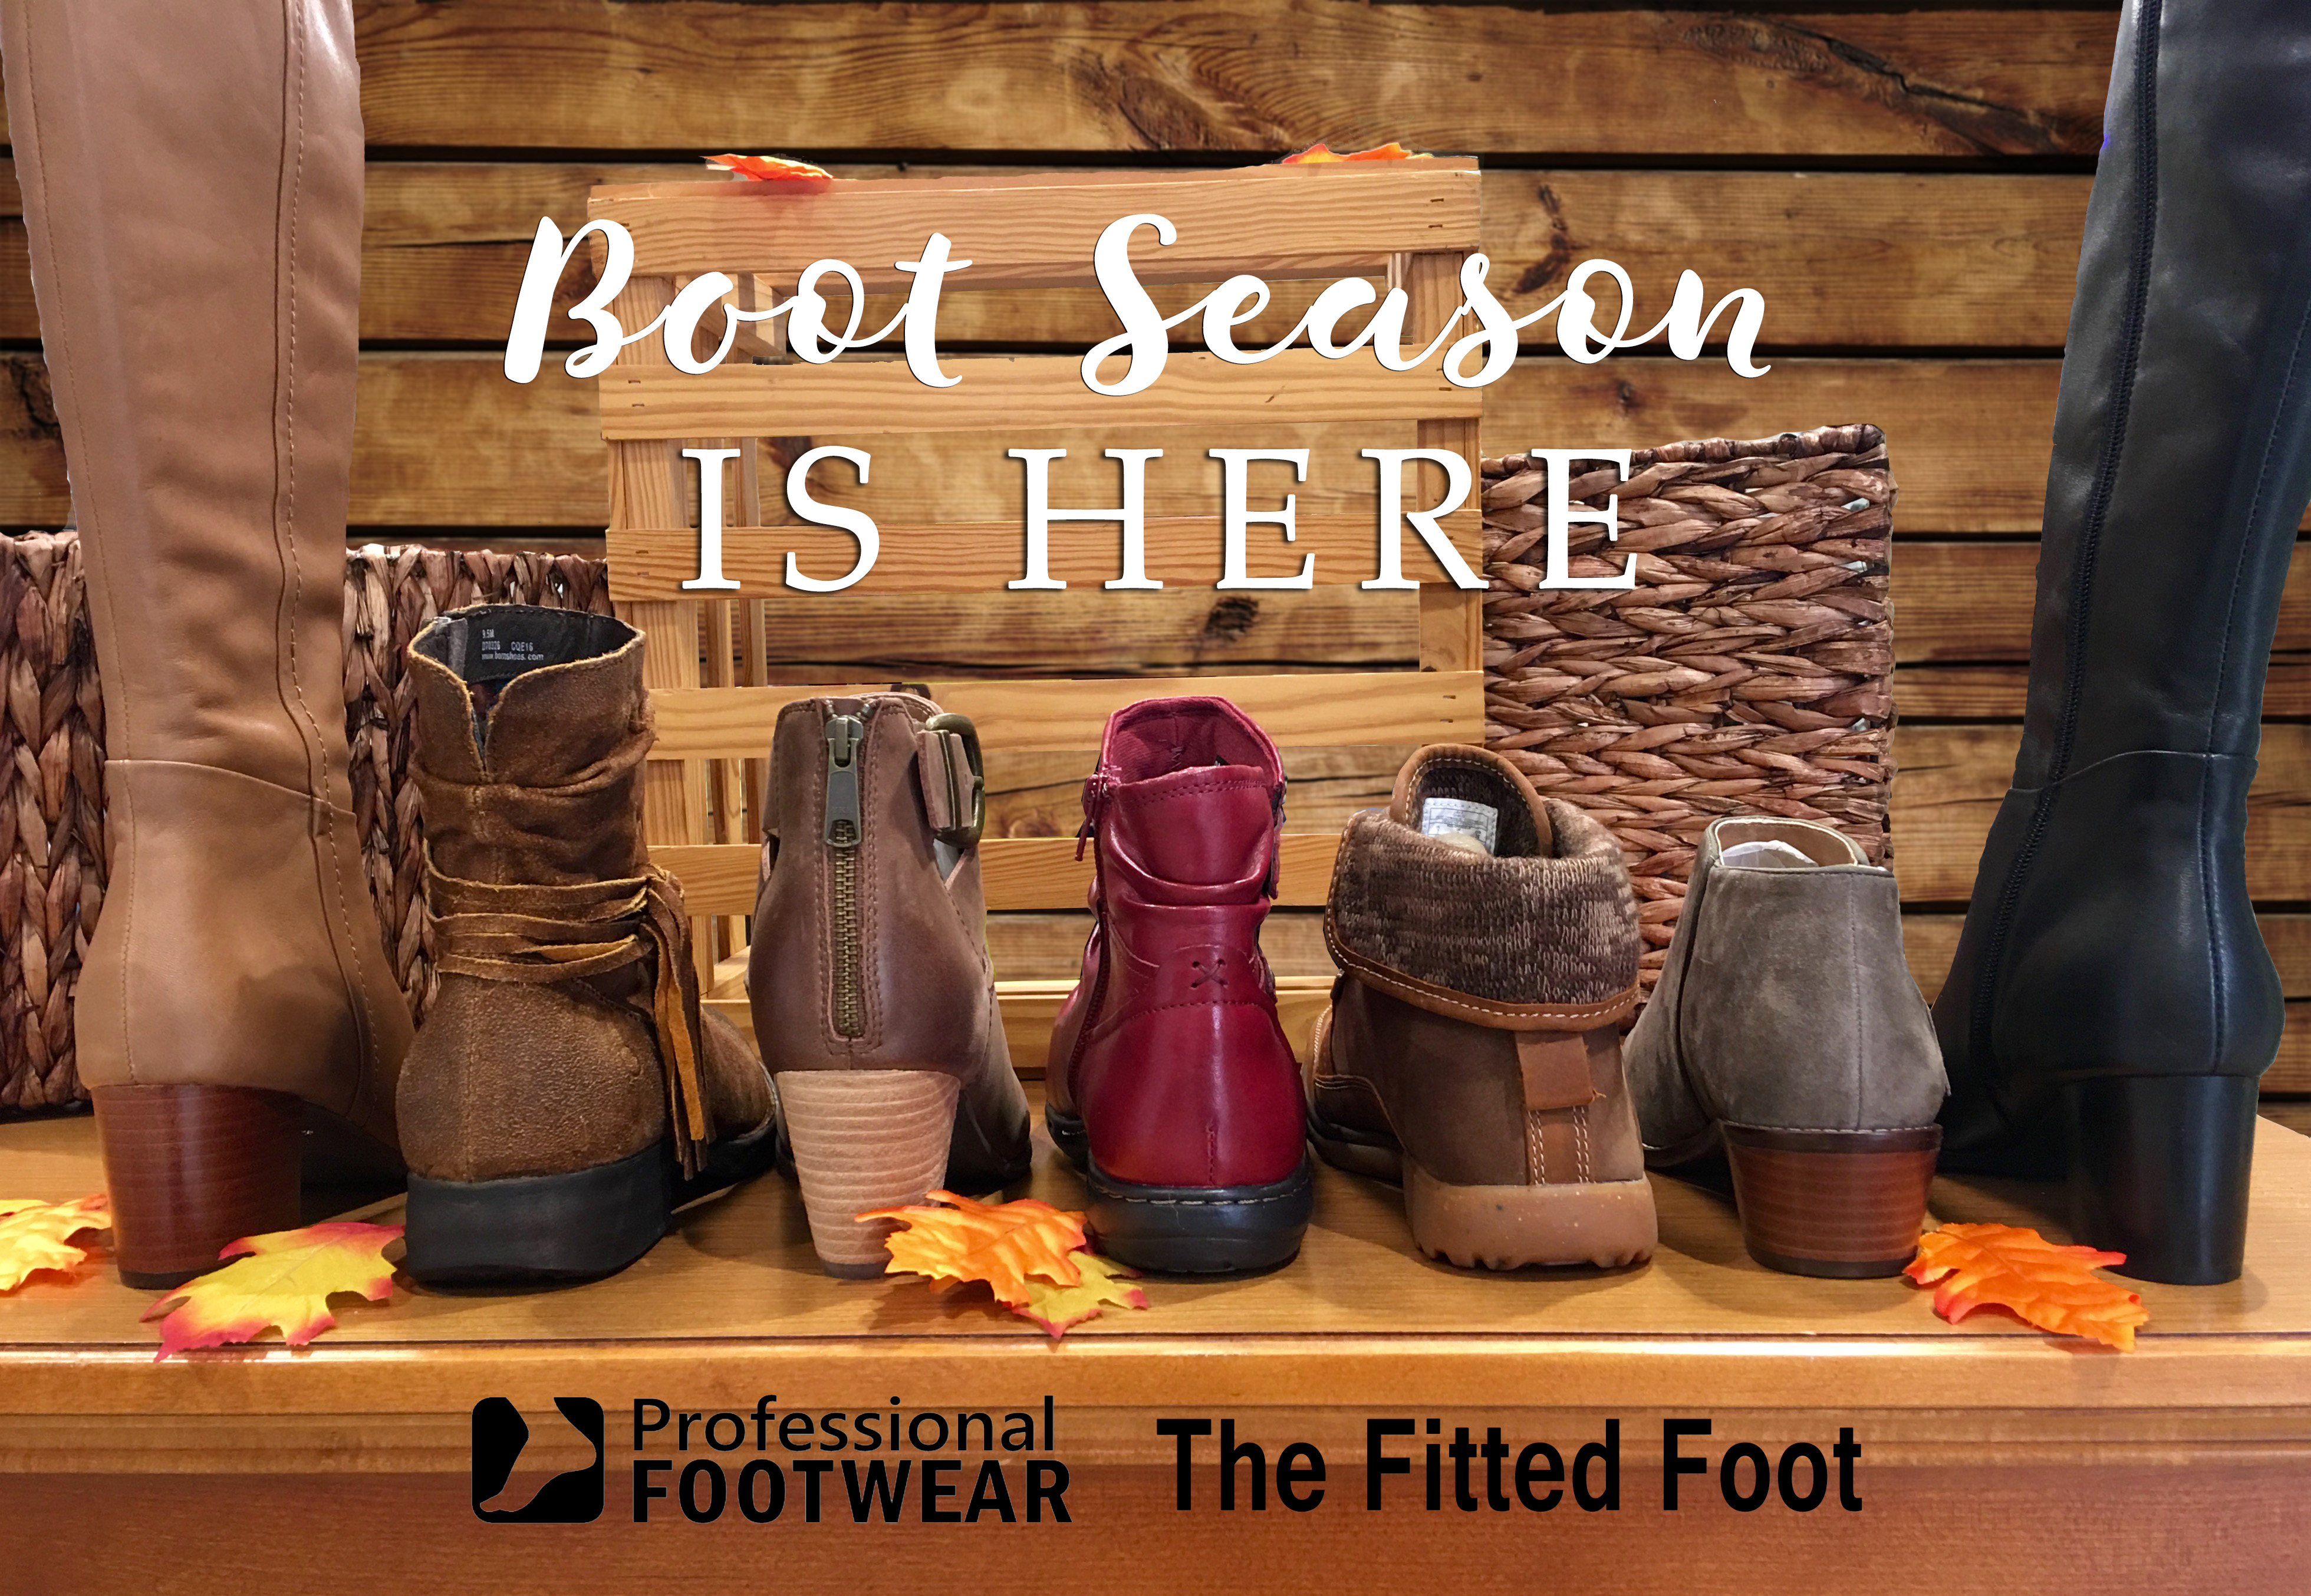 f9f05ac639f4f Boot Season is Here - The Fitted Foot